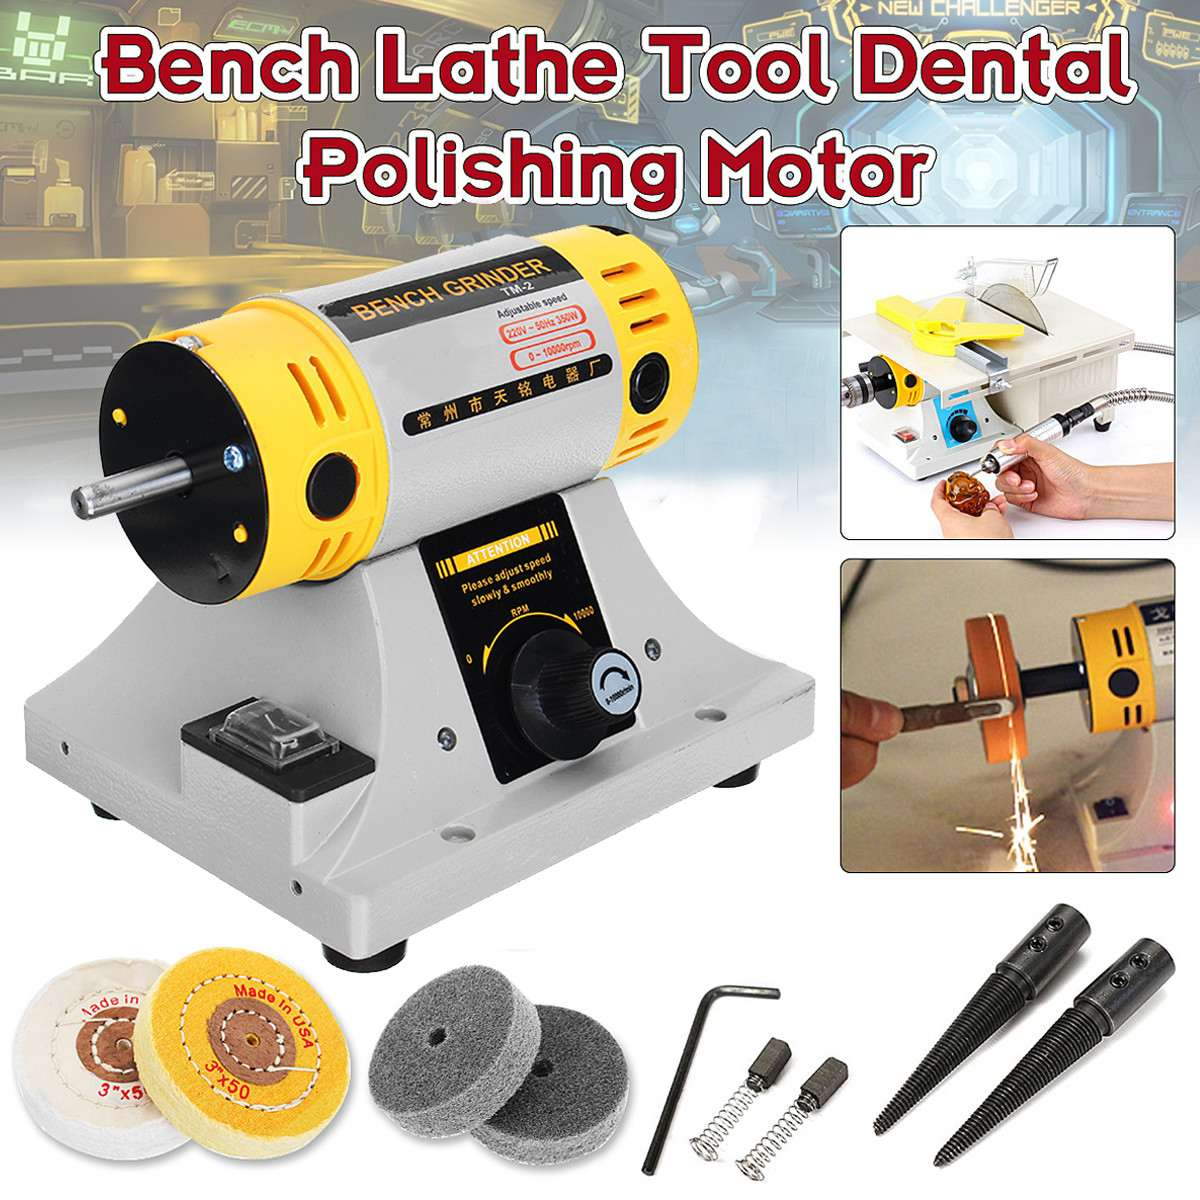 350W 220V Multi-purpose Mini Bench Grinder Polishing Machine Kit For Jewelry Dental Motor Lathe Bench Grinder Kit Set 1pcs multifunctional mini bench lathe machine electric grinder polisher drill saw tool 350w 10000 r min